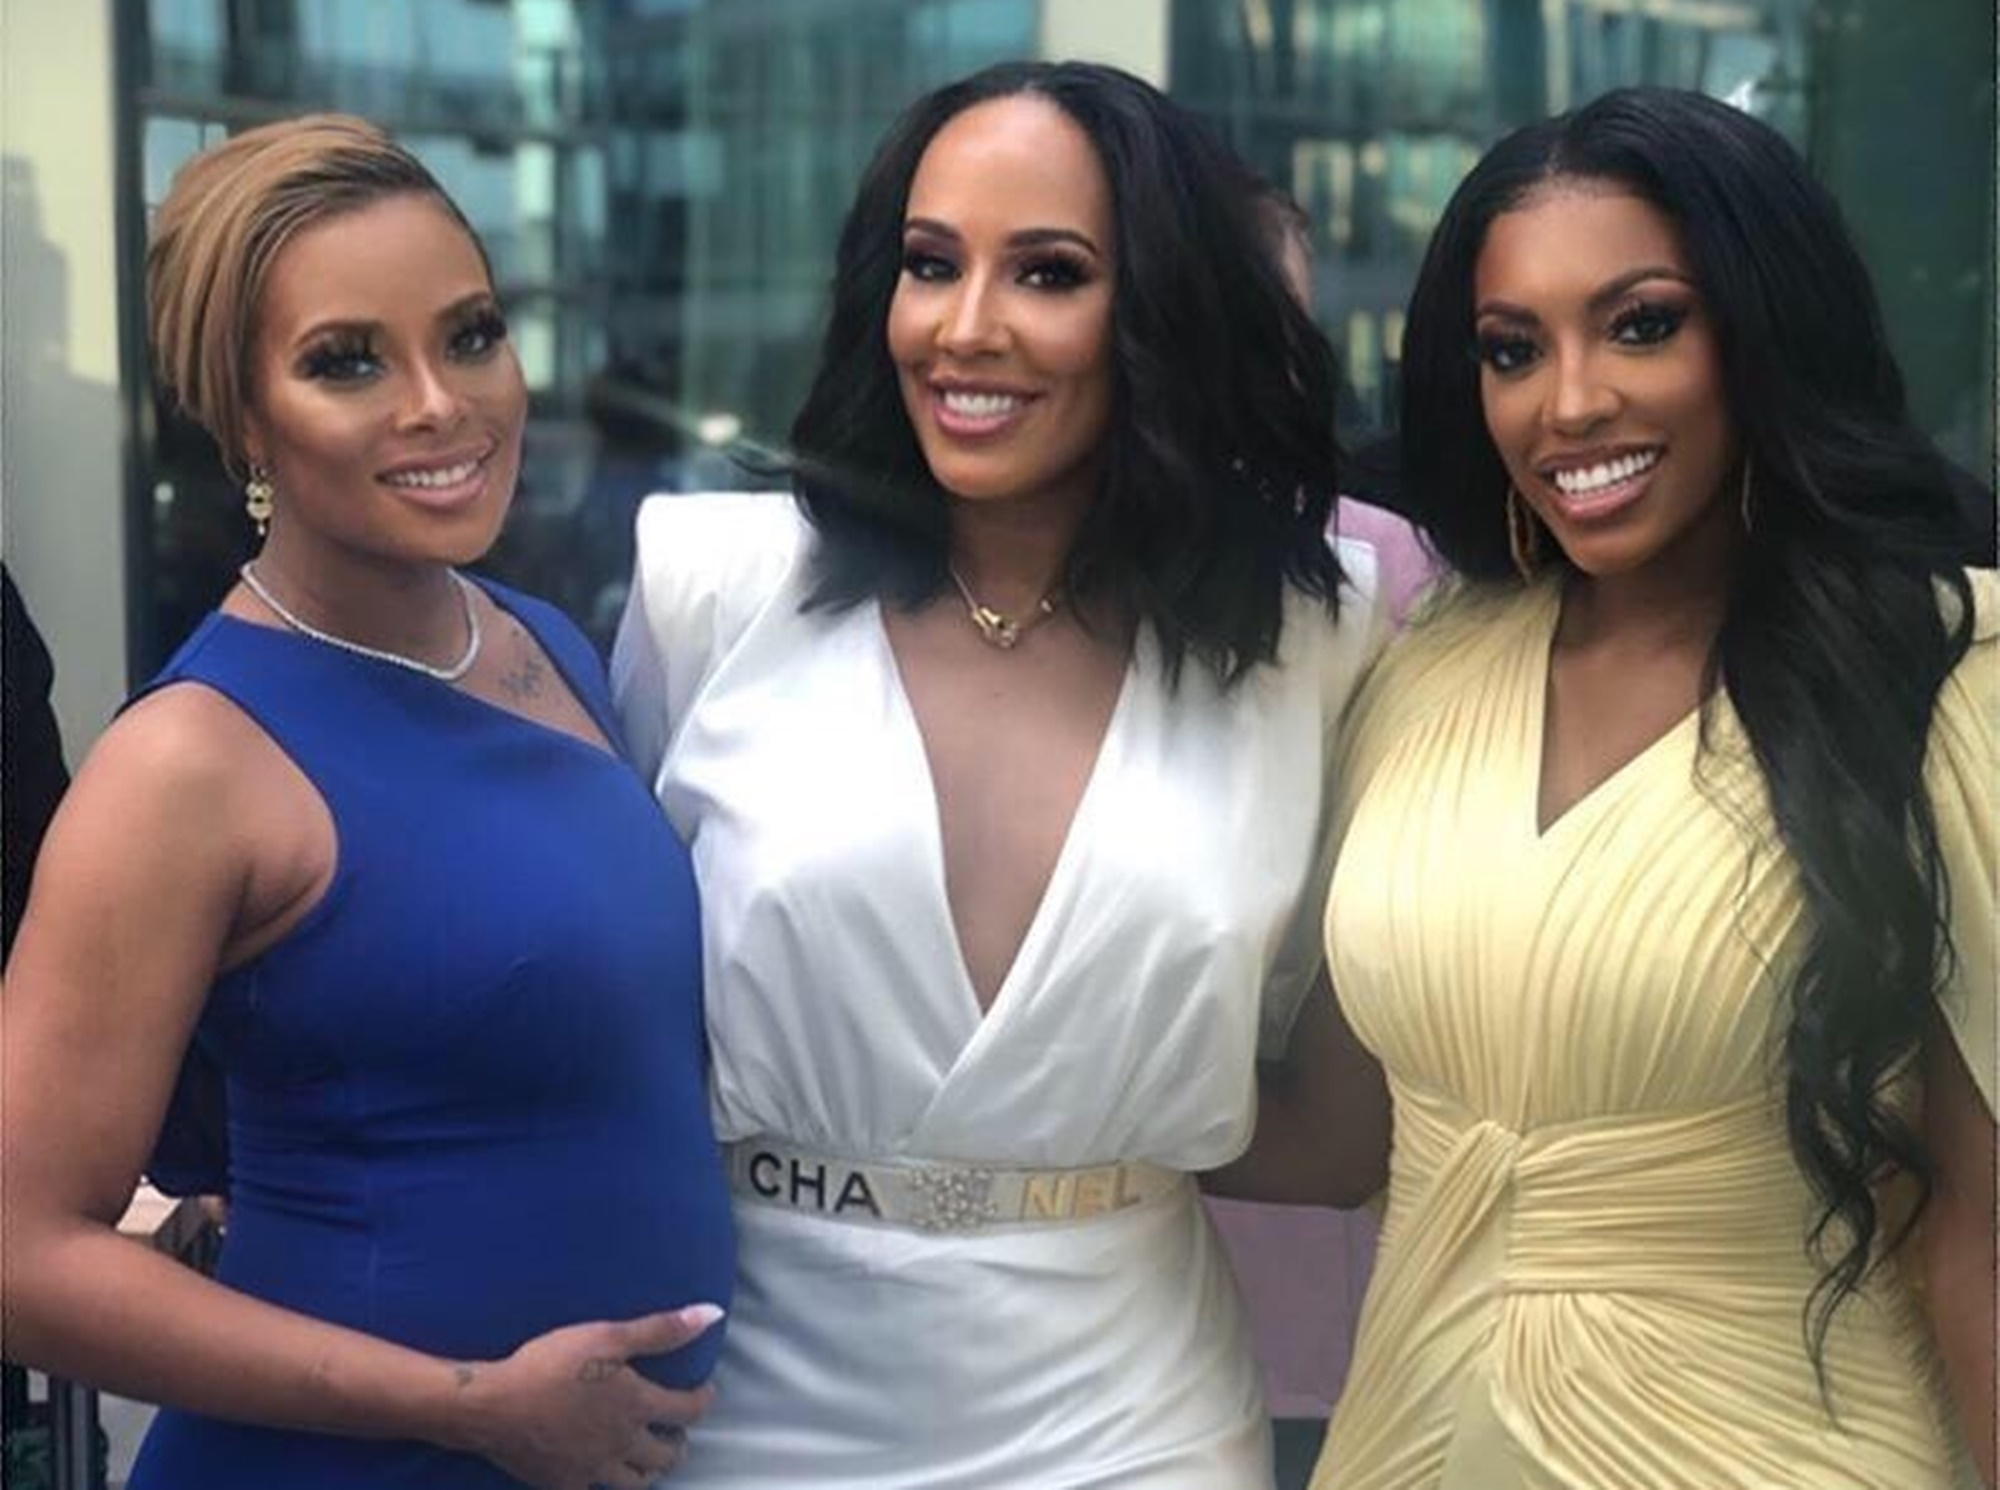 porsha-williams-and-eva-marcille-enjoy-date-night-in-cute-picture-here-is-why-dennis-mckinley-stole-the-show-for-rhoa-fans